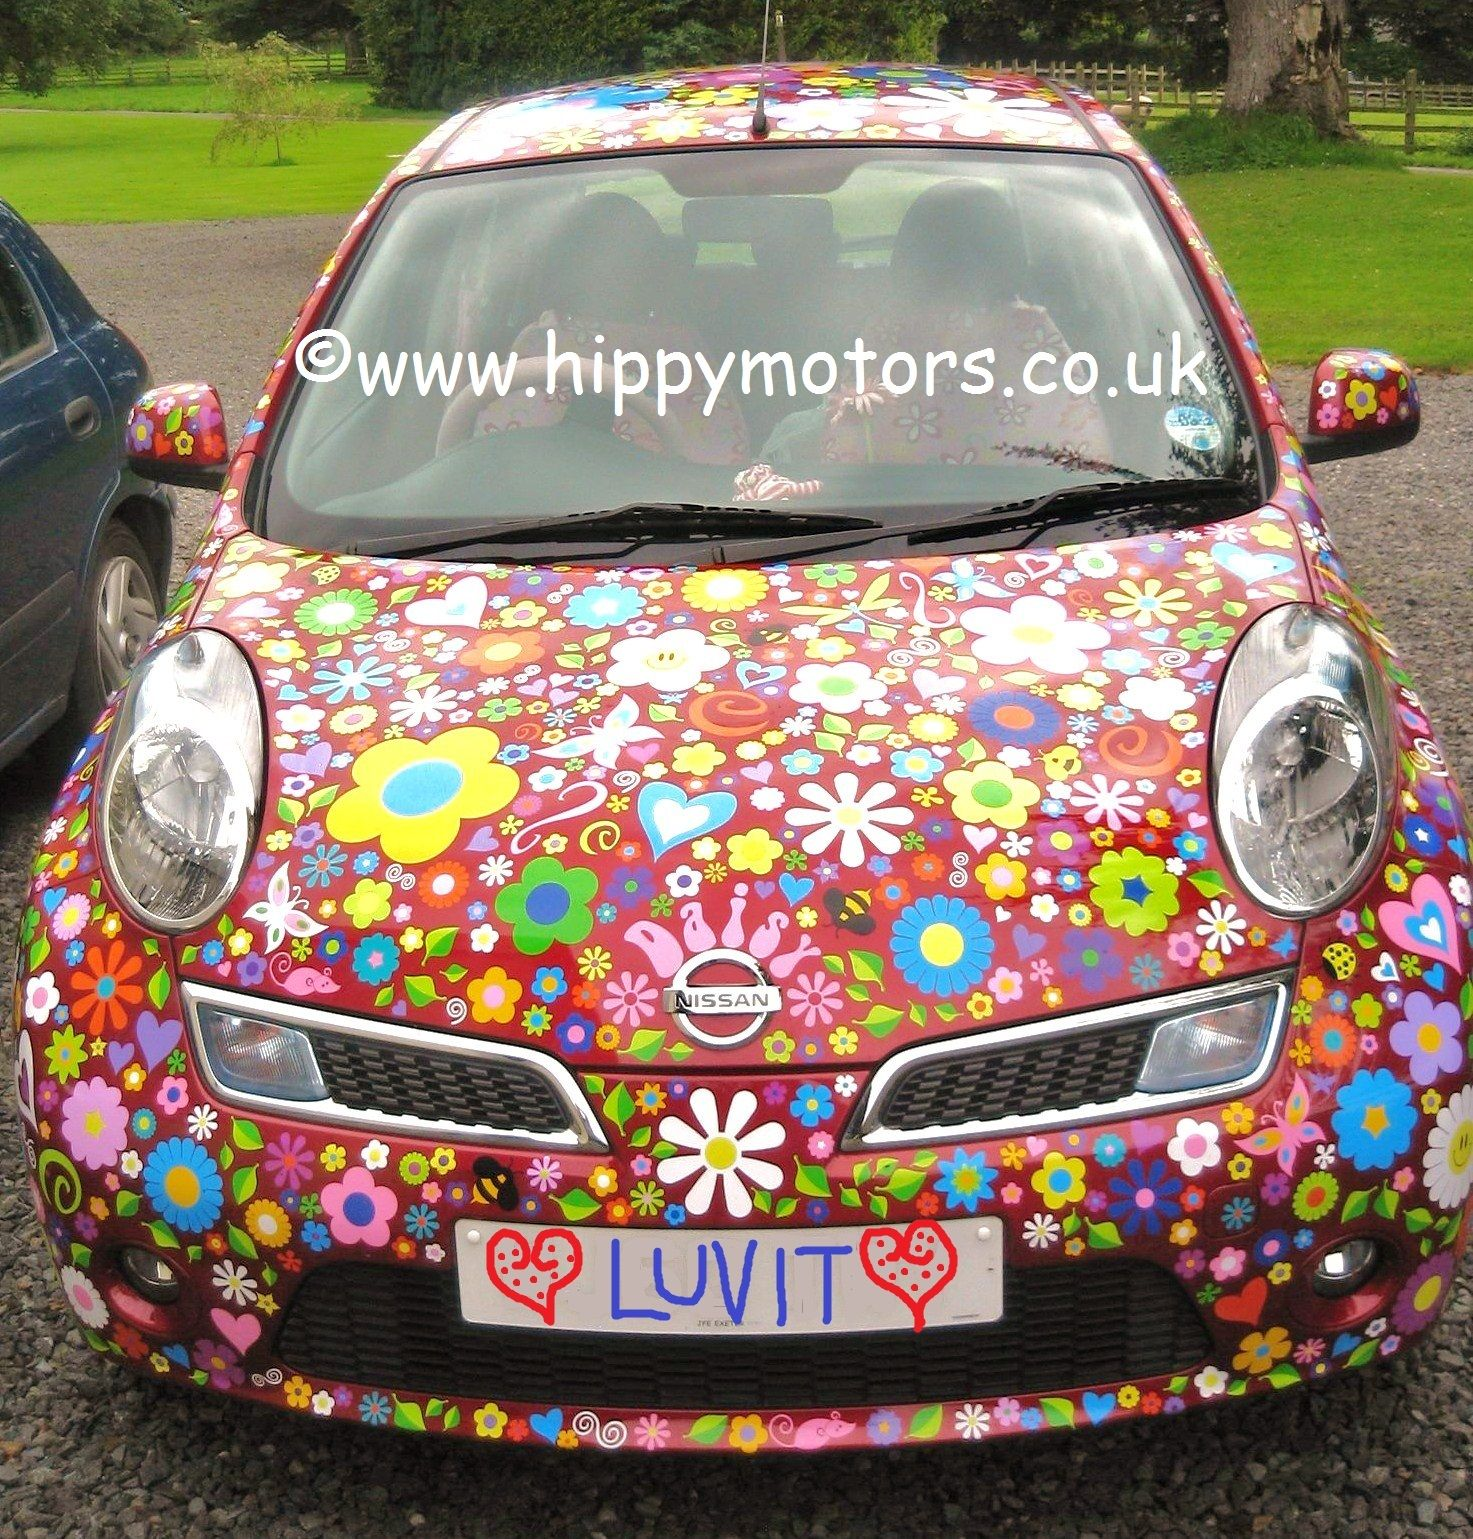 Love These Daisy Flower Power Nissan Car Stickers Decals By - Vinyl decals for cars uk